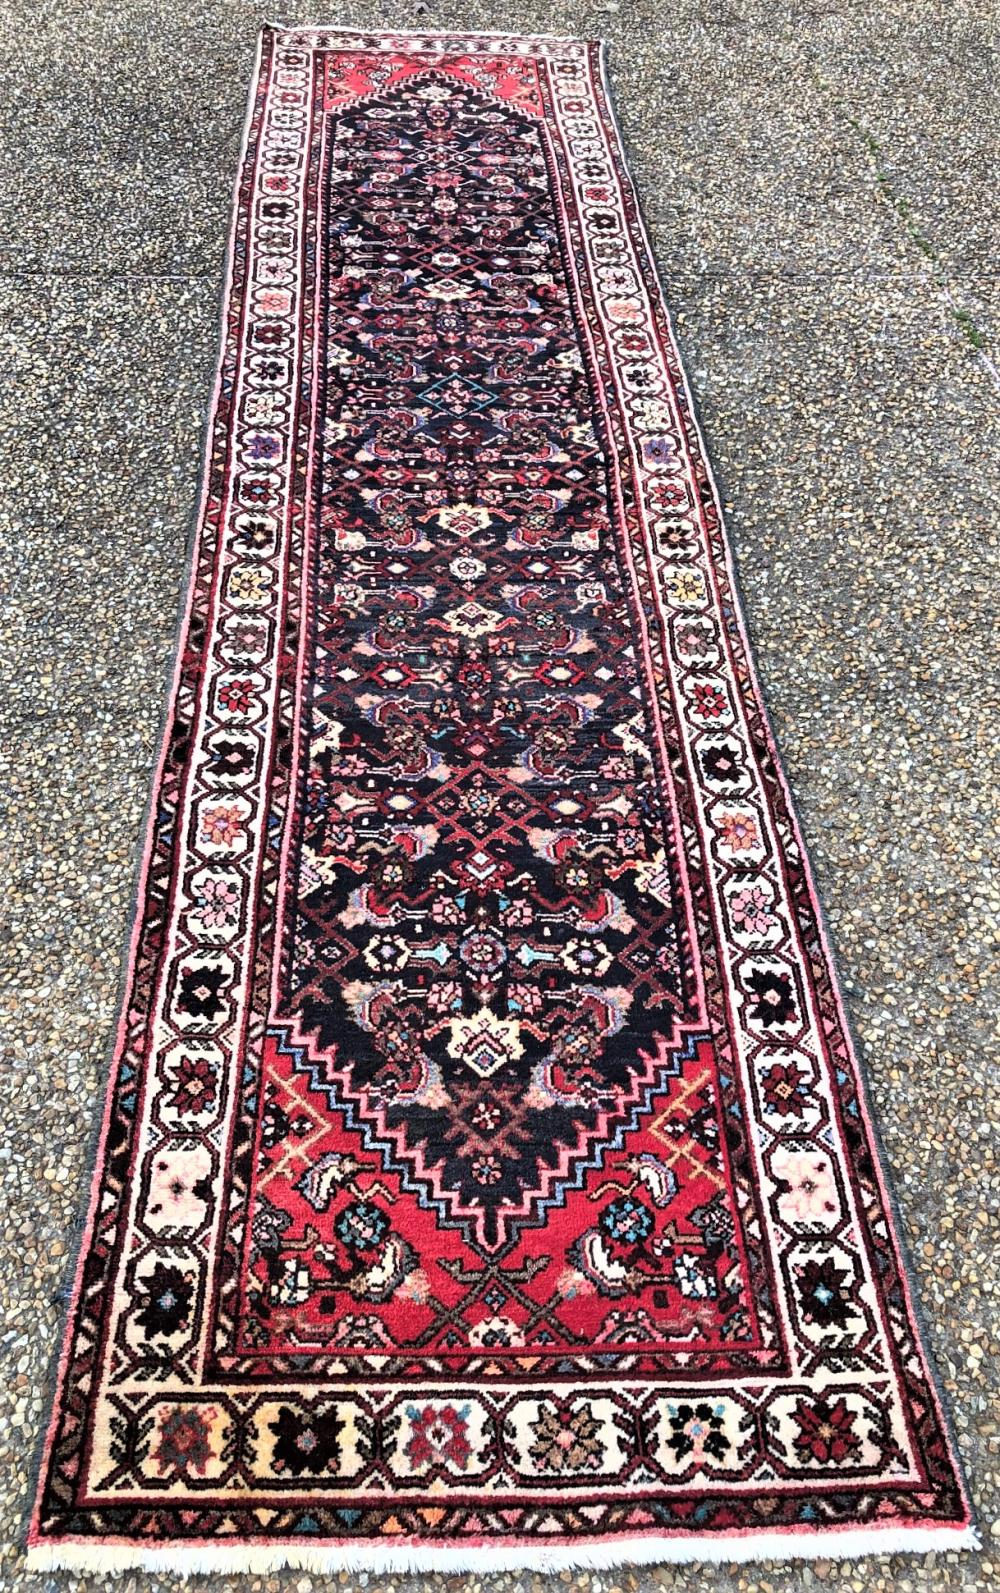 ANTIQUE PERSIAN HAMADAN HAND KNOTTED RUNNER - 3.3 x 12.10